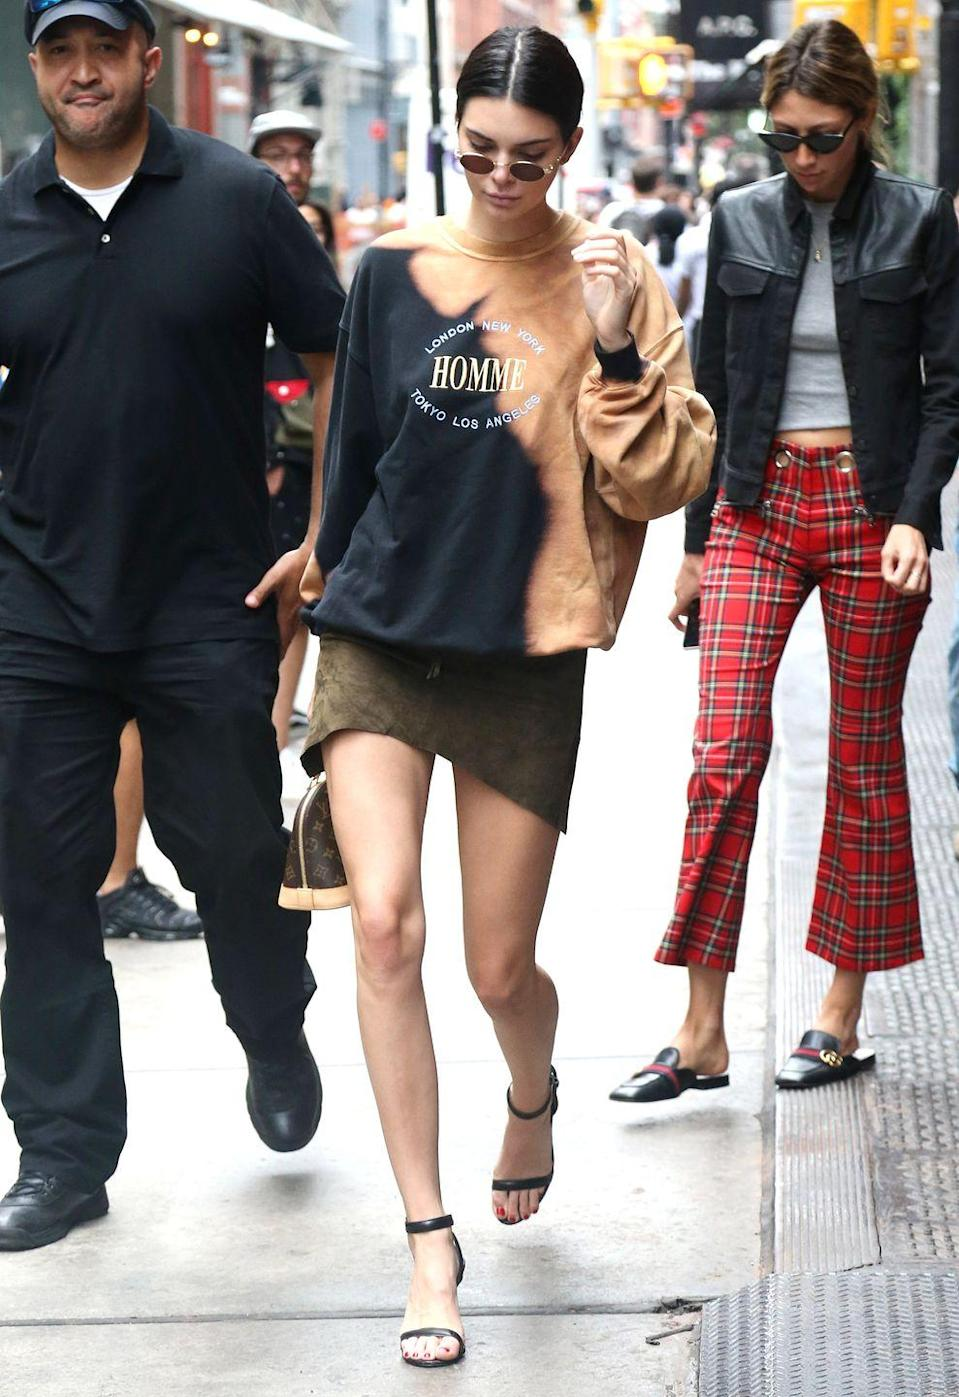 <p>Kendall sports a 'Homme' Balenciaga sweatshirt whilst out and about in New York, July 2017</p>